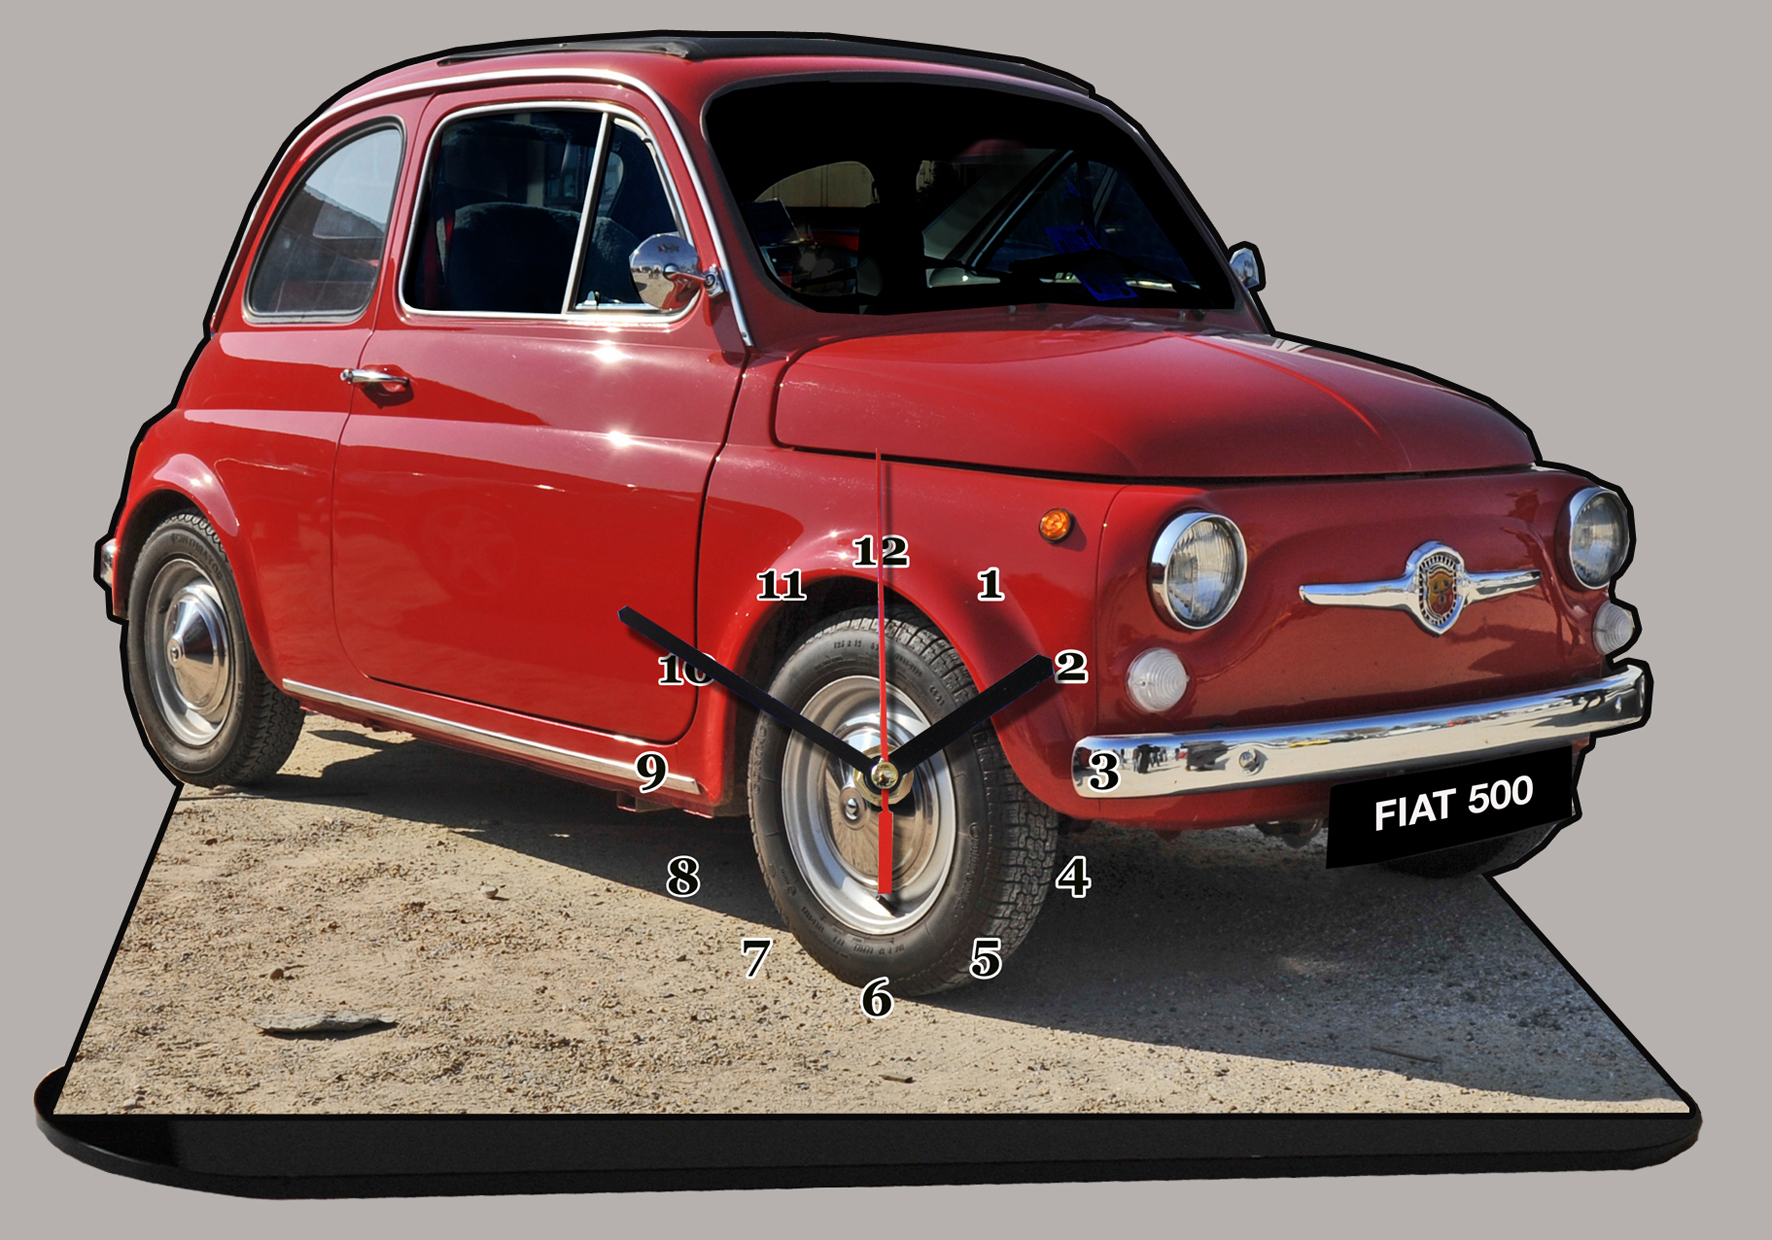 fiat 500 rouge 04 en miniature auto horloge. Black Bedroom Furniture Sets. Home Design Ideas